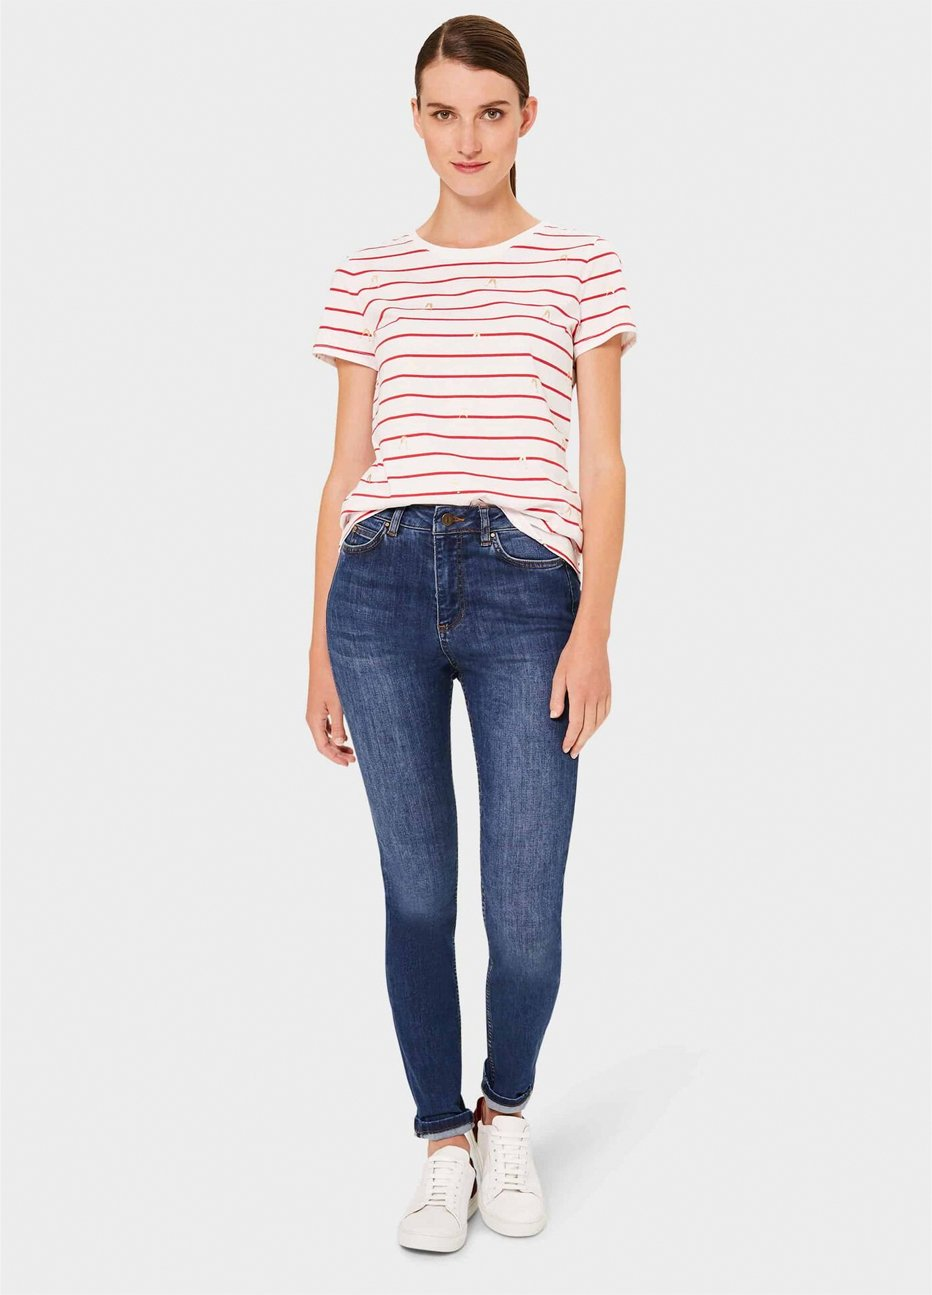 White tshirt with red stripes styled with blue denim jeans and white trainers by Hobbs.